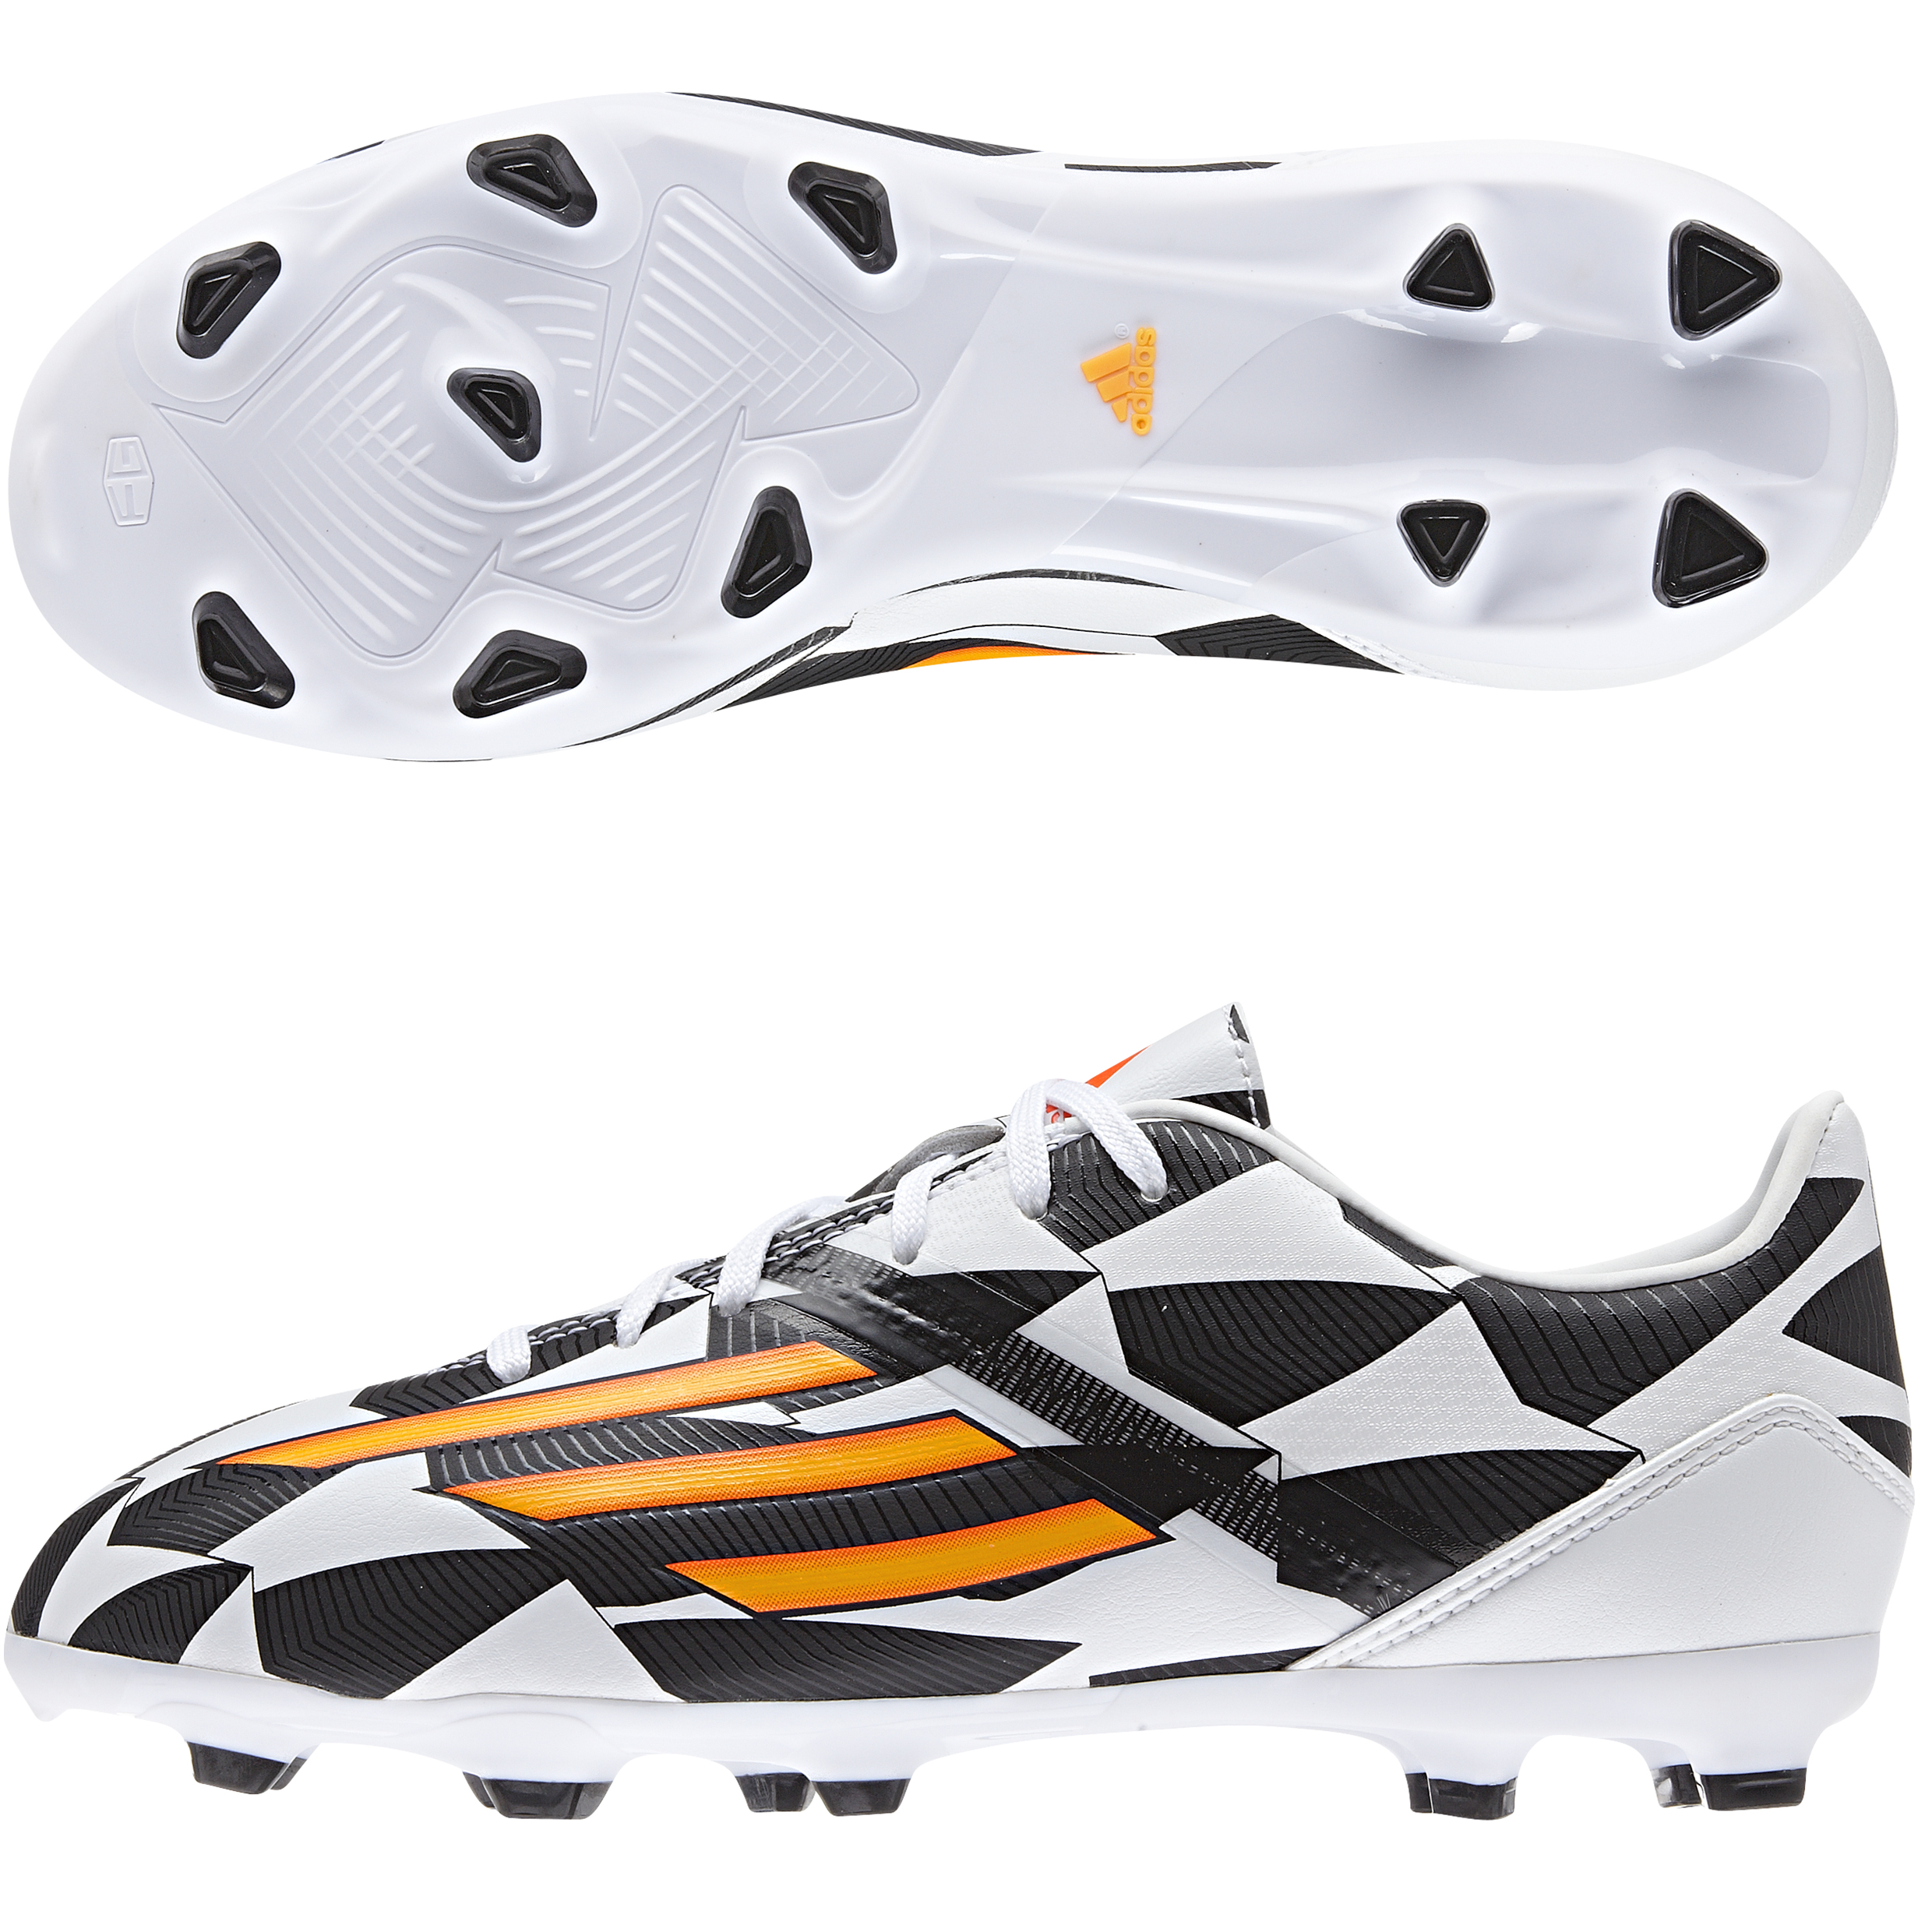 Adidas F10 World Cup 2014 Firm Ground Football Boots - Kids White